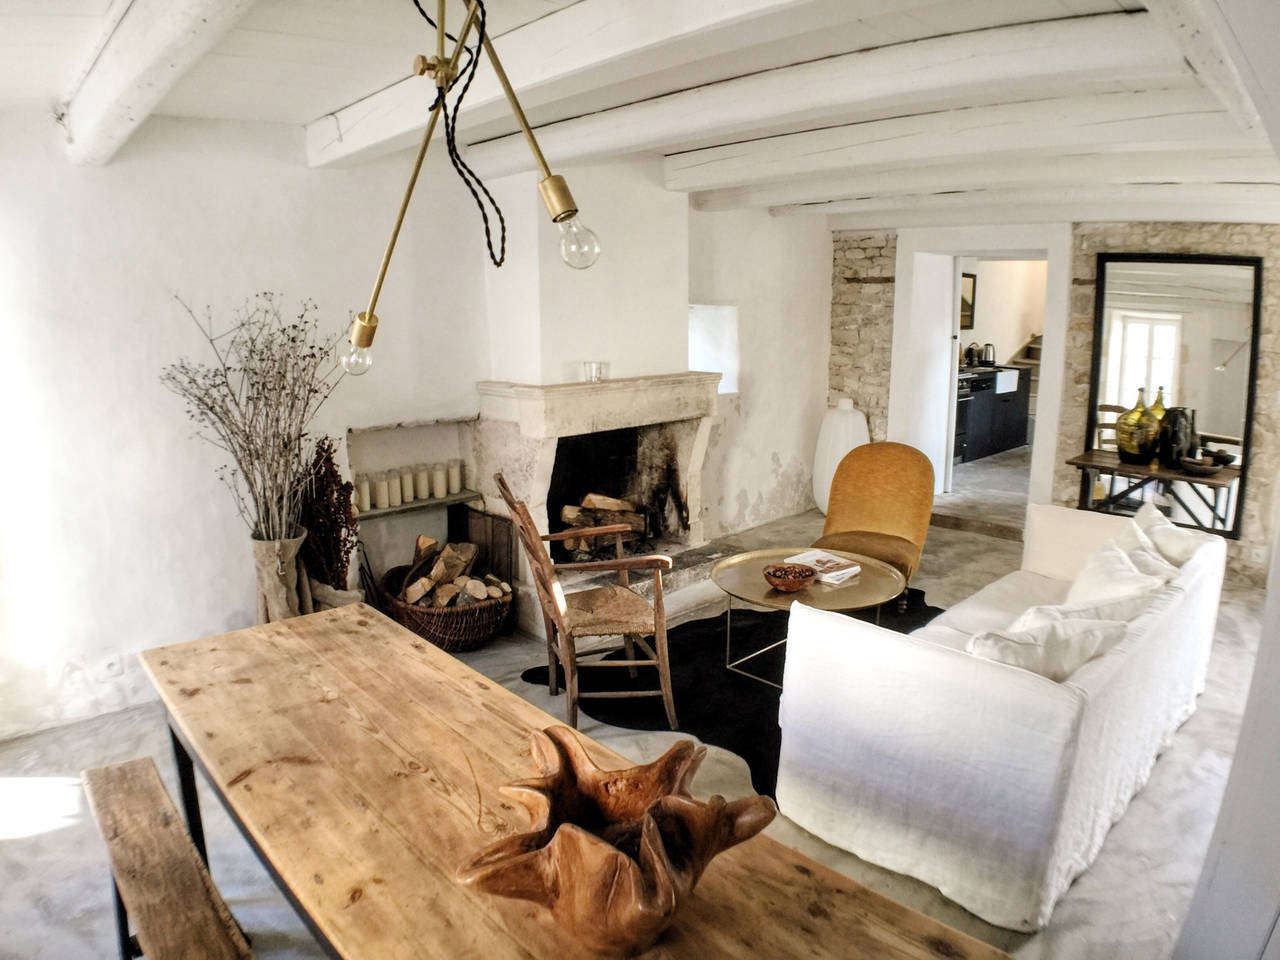 A farmhouse table and long bench, ready for relaxed French dinners. For ideas, see Steal This Look: Living Room at La Maison du Figuier in France.